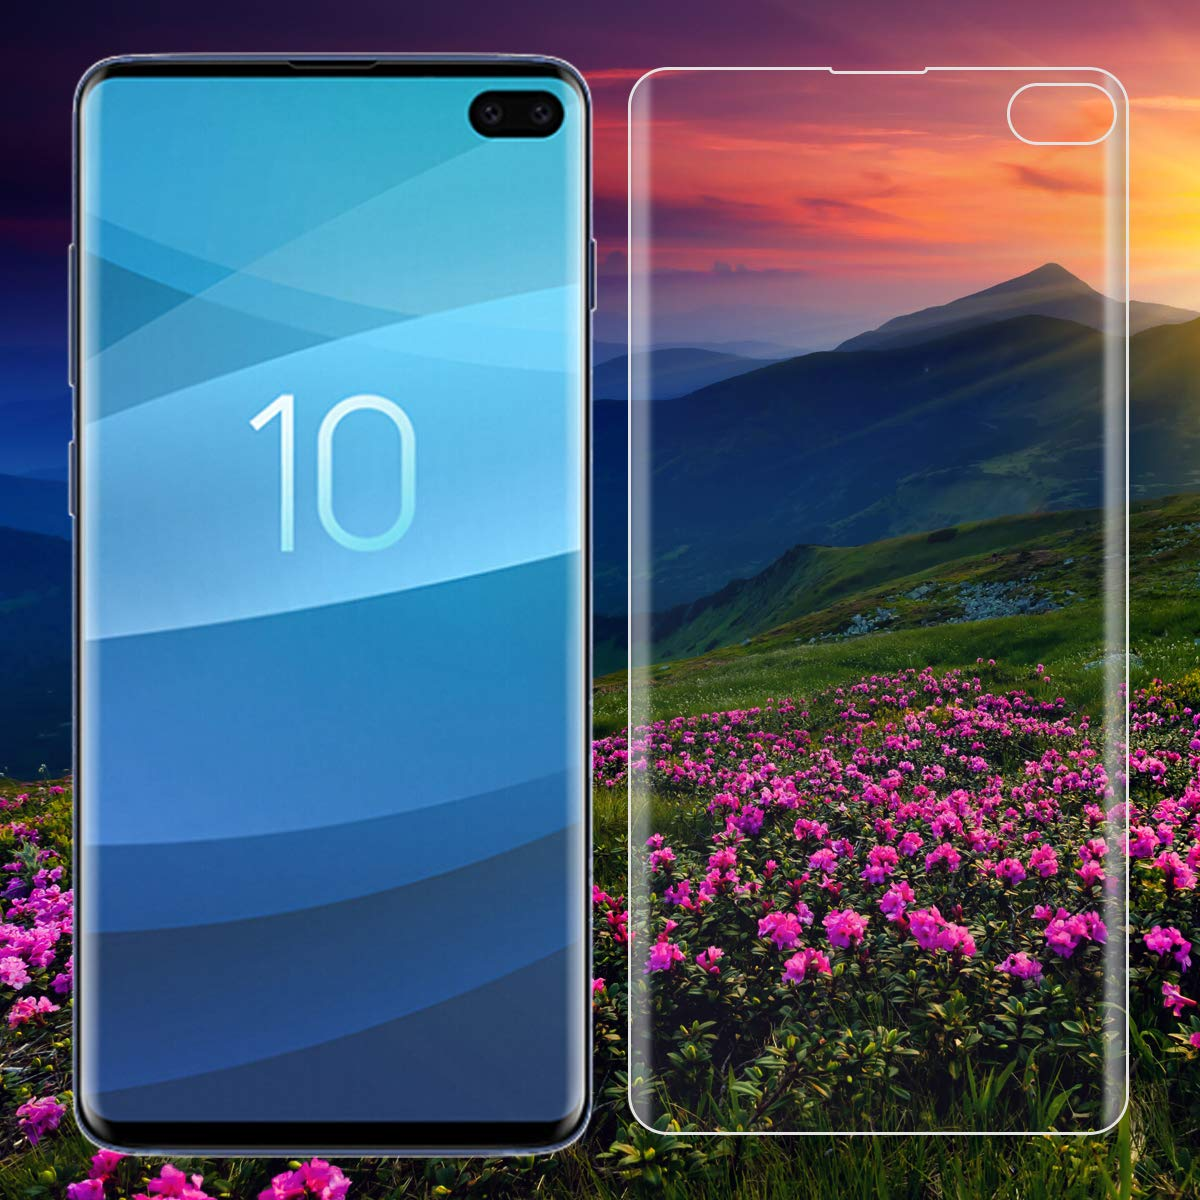 Scratch Resistant Anti-Scratch -2 Pack Case Friendly Samsung Galaxy S10 Plus Screen Film Full Coverage Tempered Glass Screen Protector Film Edge to Edge Protection